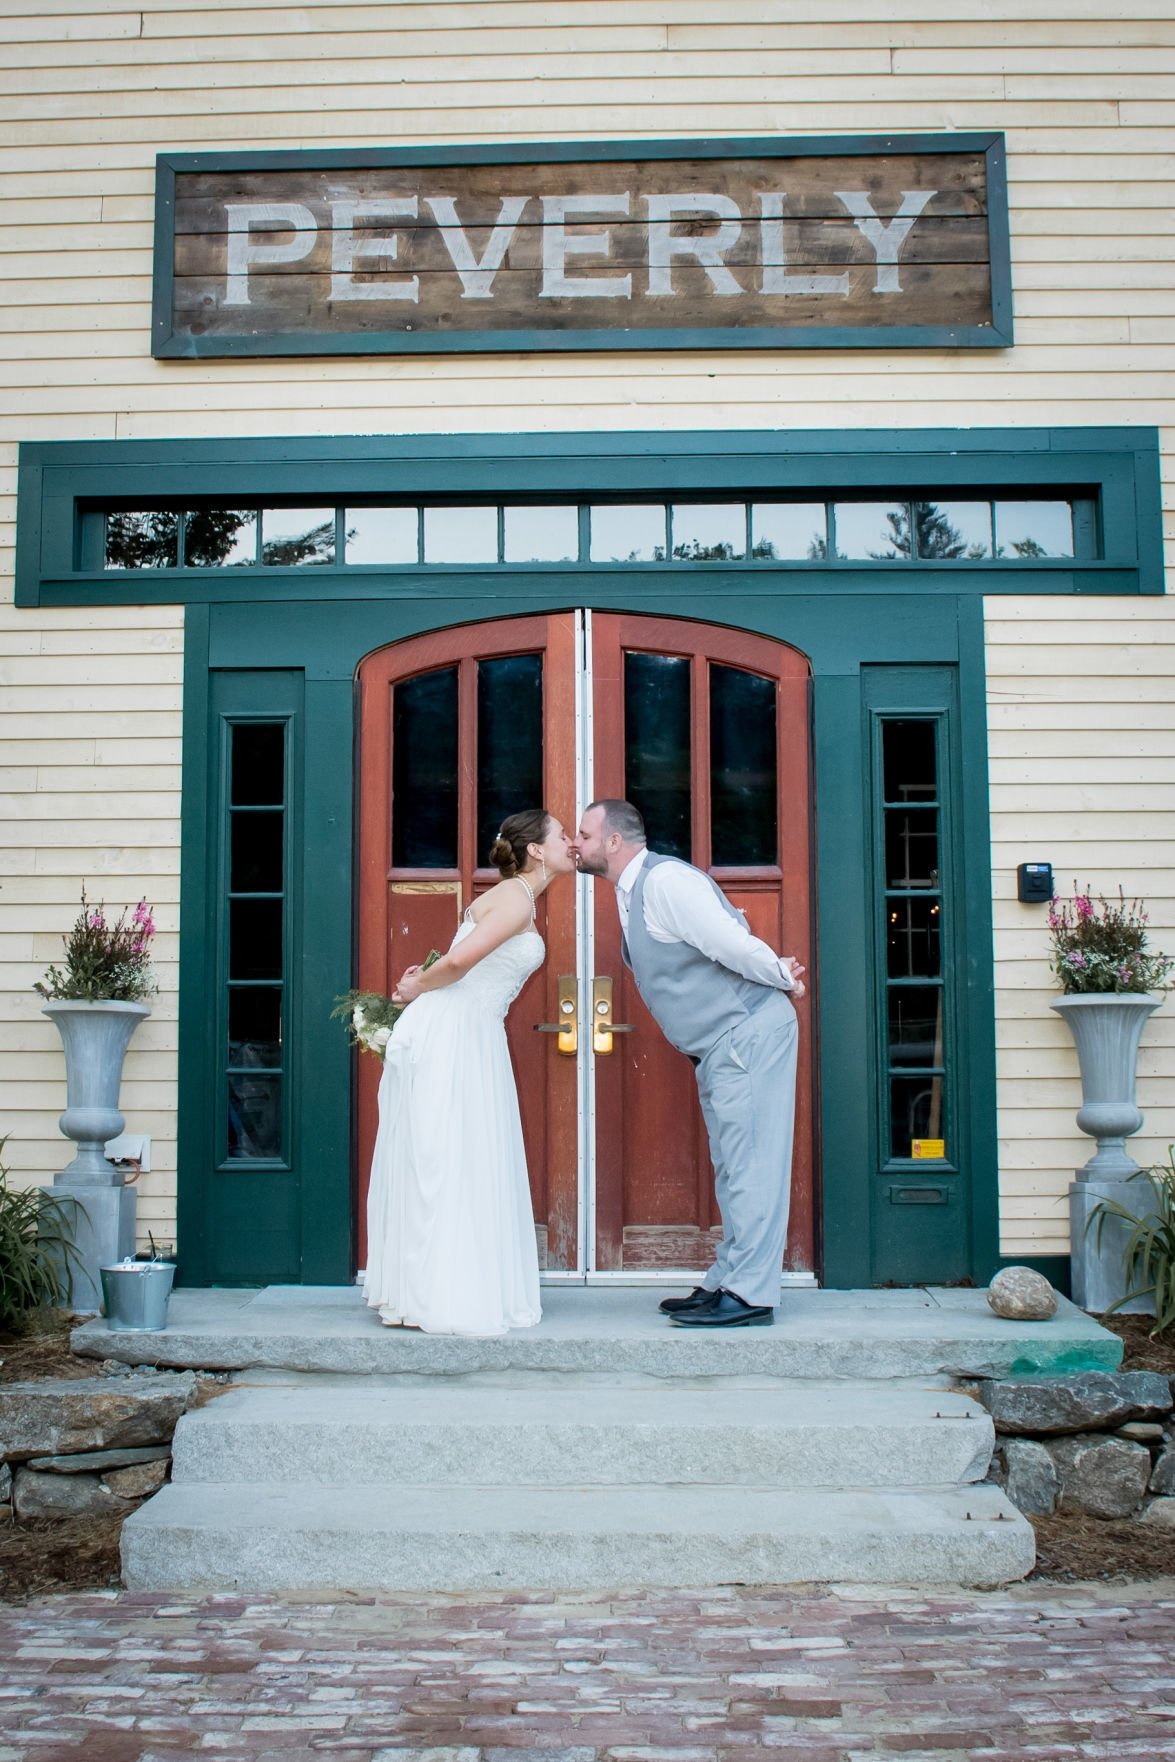 First wedding at the barn